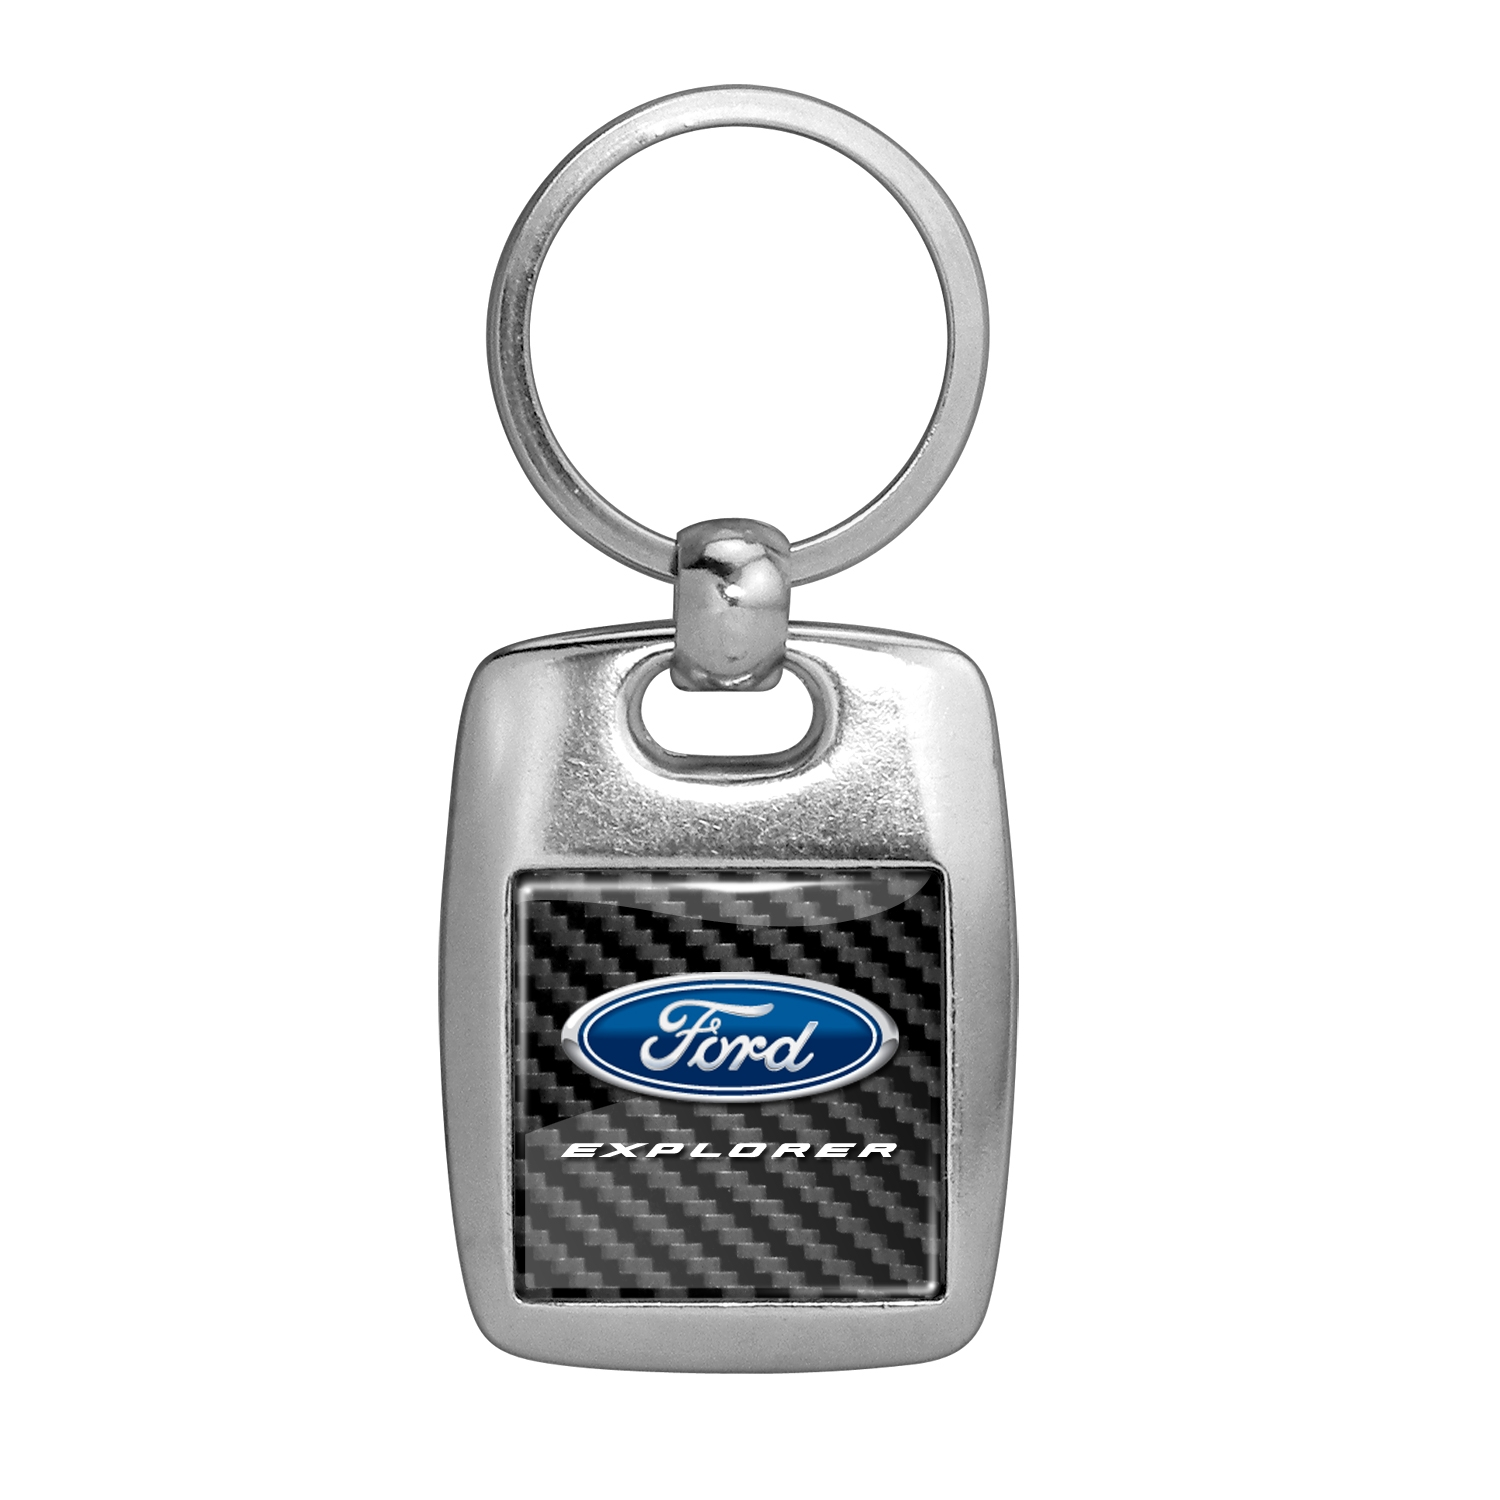 Ford Explorer in Color on Carbon Fiber Backing Brush Metal Key Chain